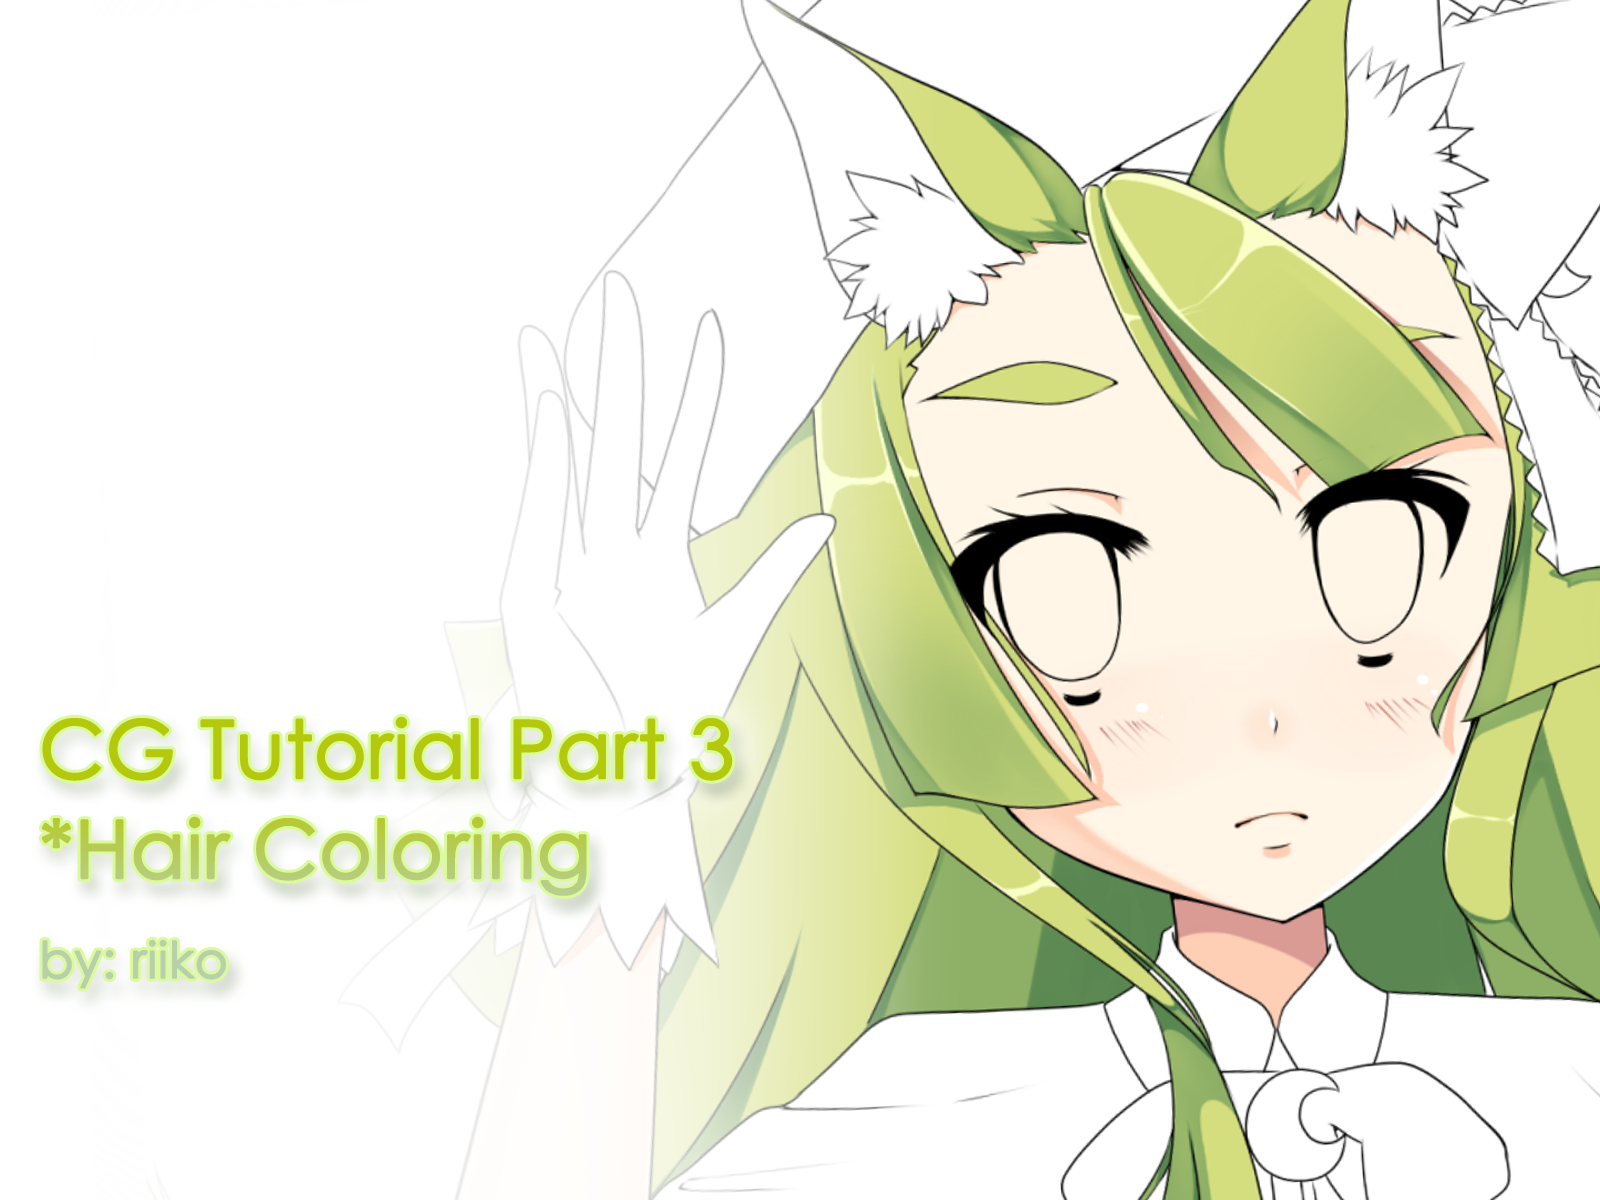 CG Tutorials [Part 3] Hair Coloring by Riikochan-Artworks on DeviantArt